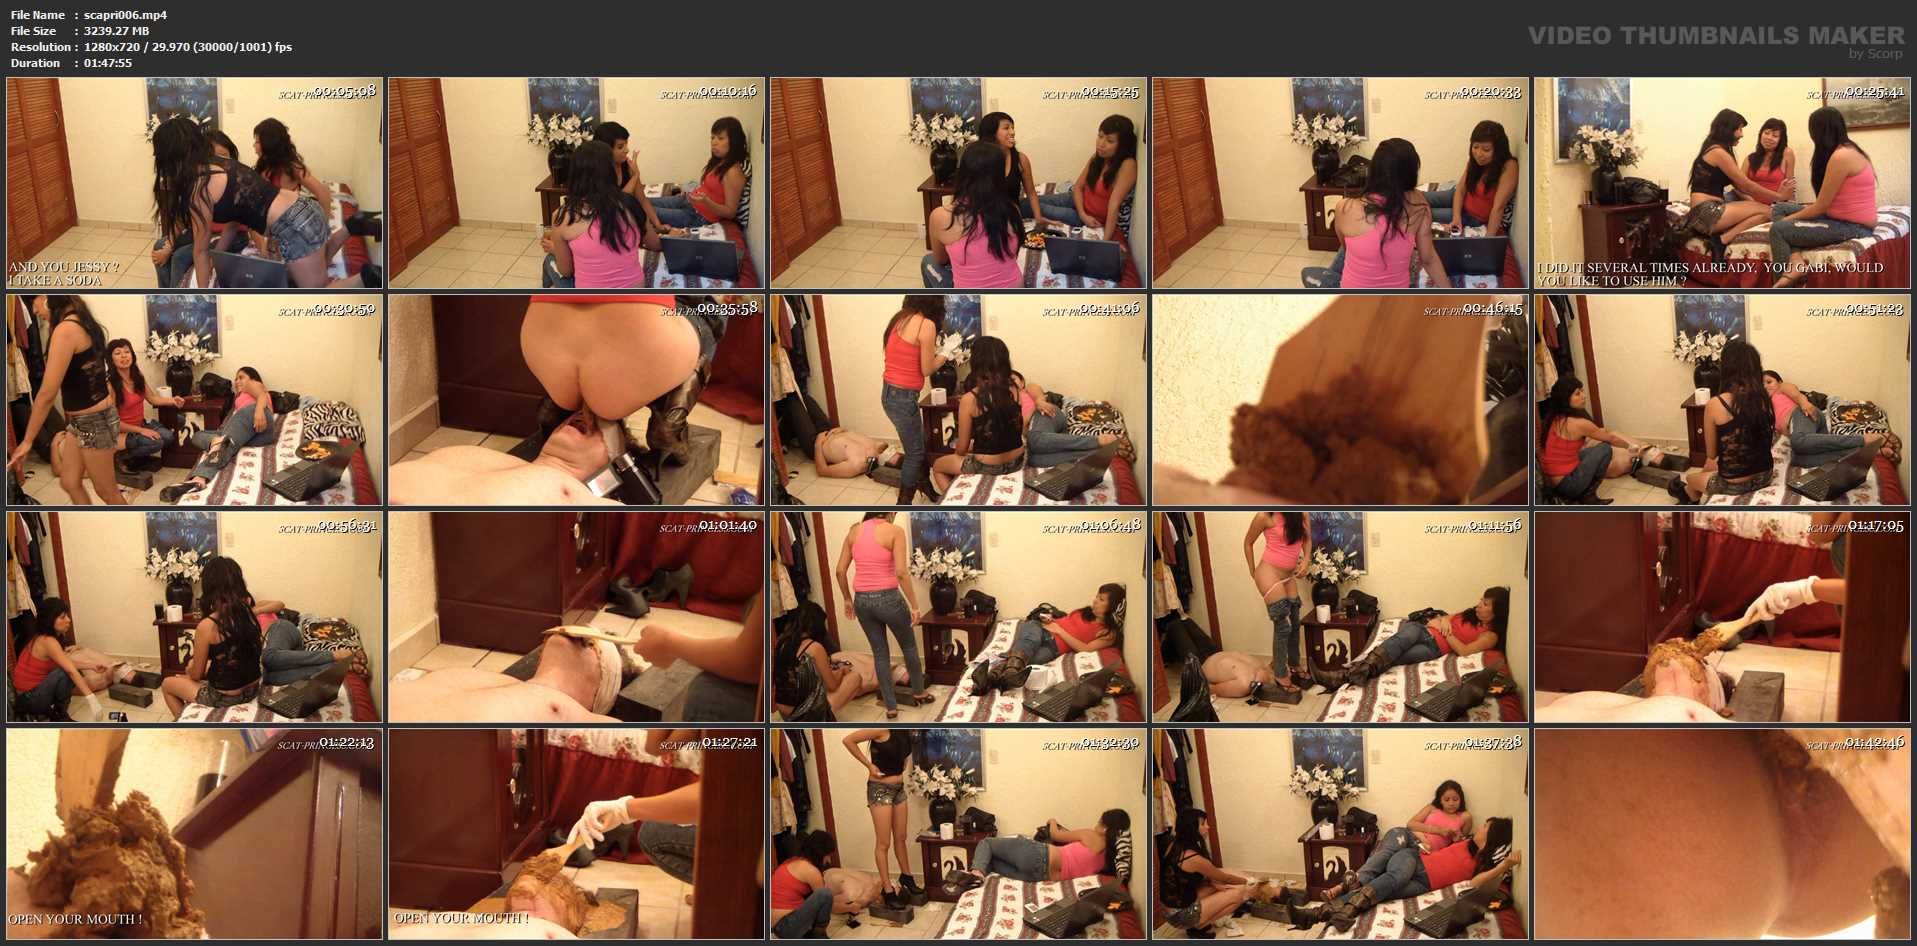 [DOM-PRINCESS / SCAT-PRINCESS] Toilet Slave Come Out of My Closet Jessy, Gabi, Nataly [HD][720p][MP4]